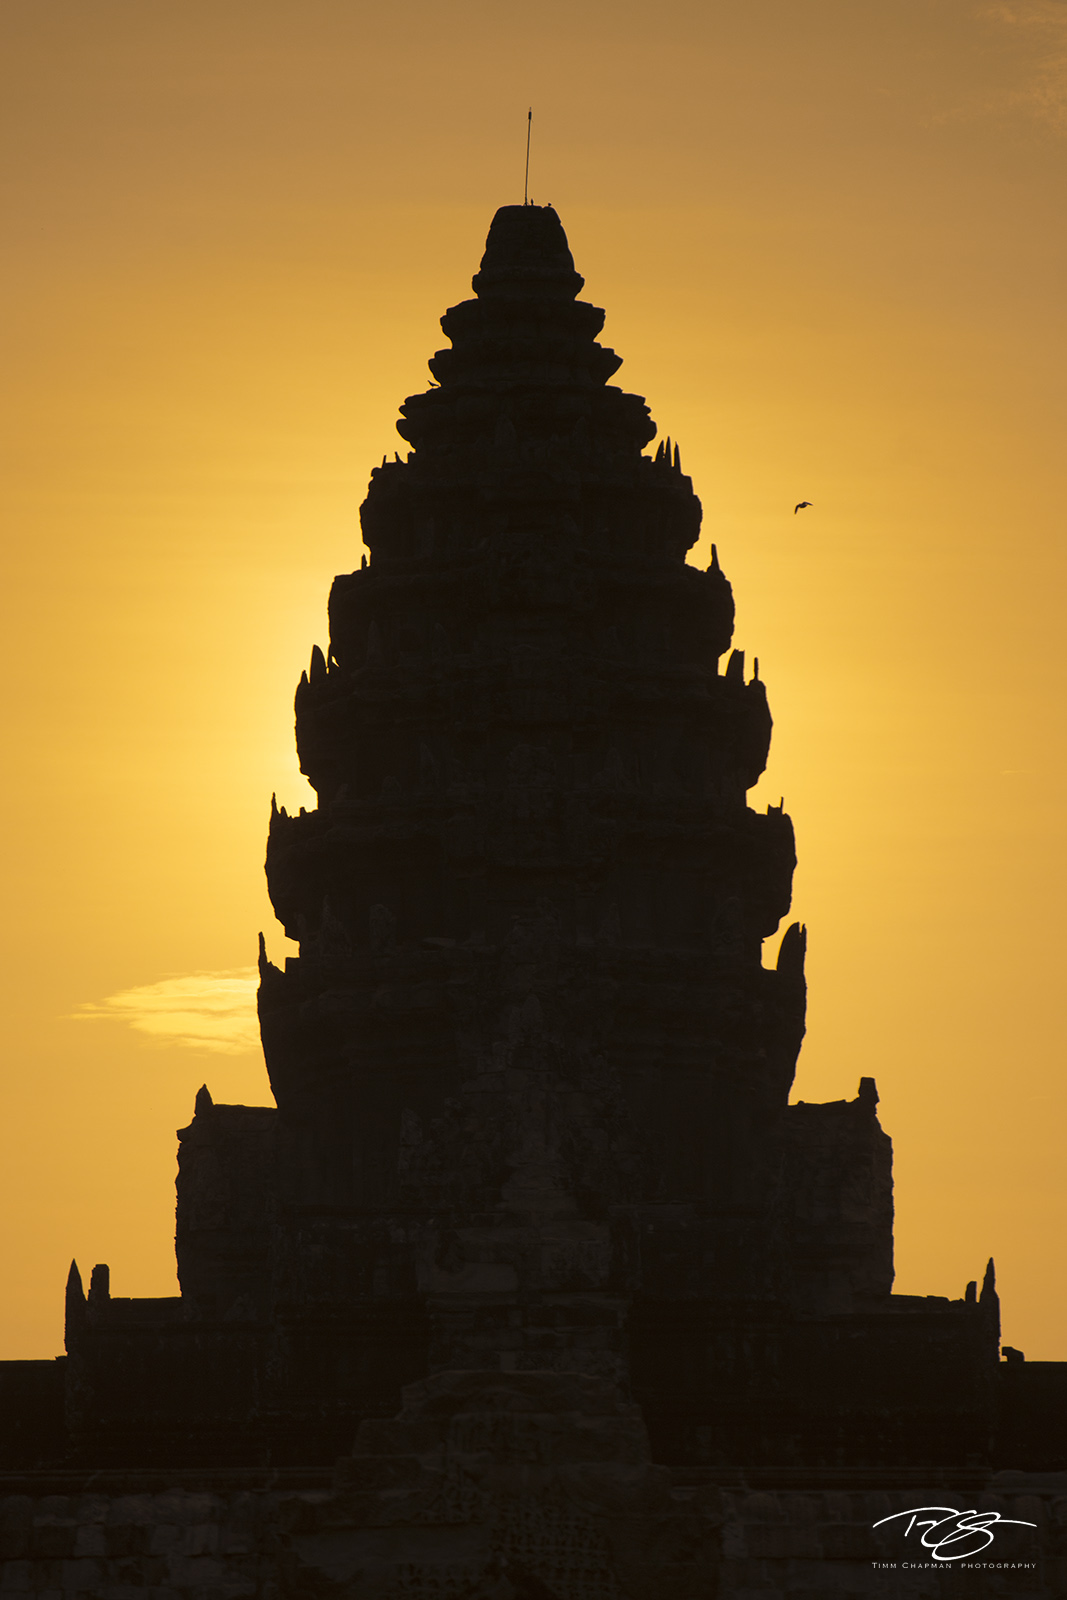 angkor wat, cambodia, temple, angkor wat, lotus, roof, towers, lotus bud, silhouette, golden hour, morning, backlit, cambodia, monastery, photo